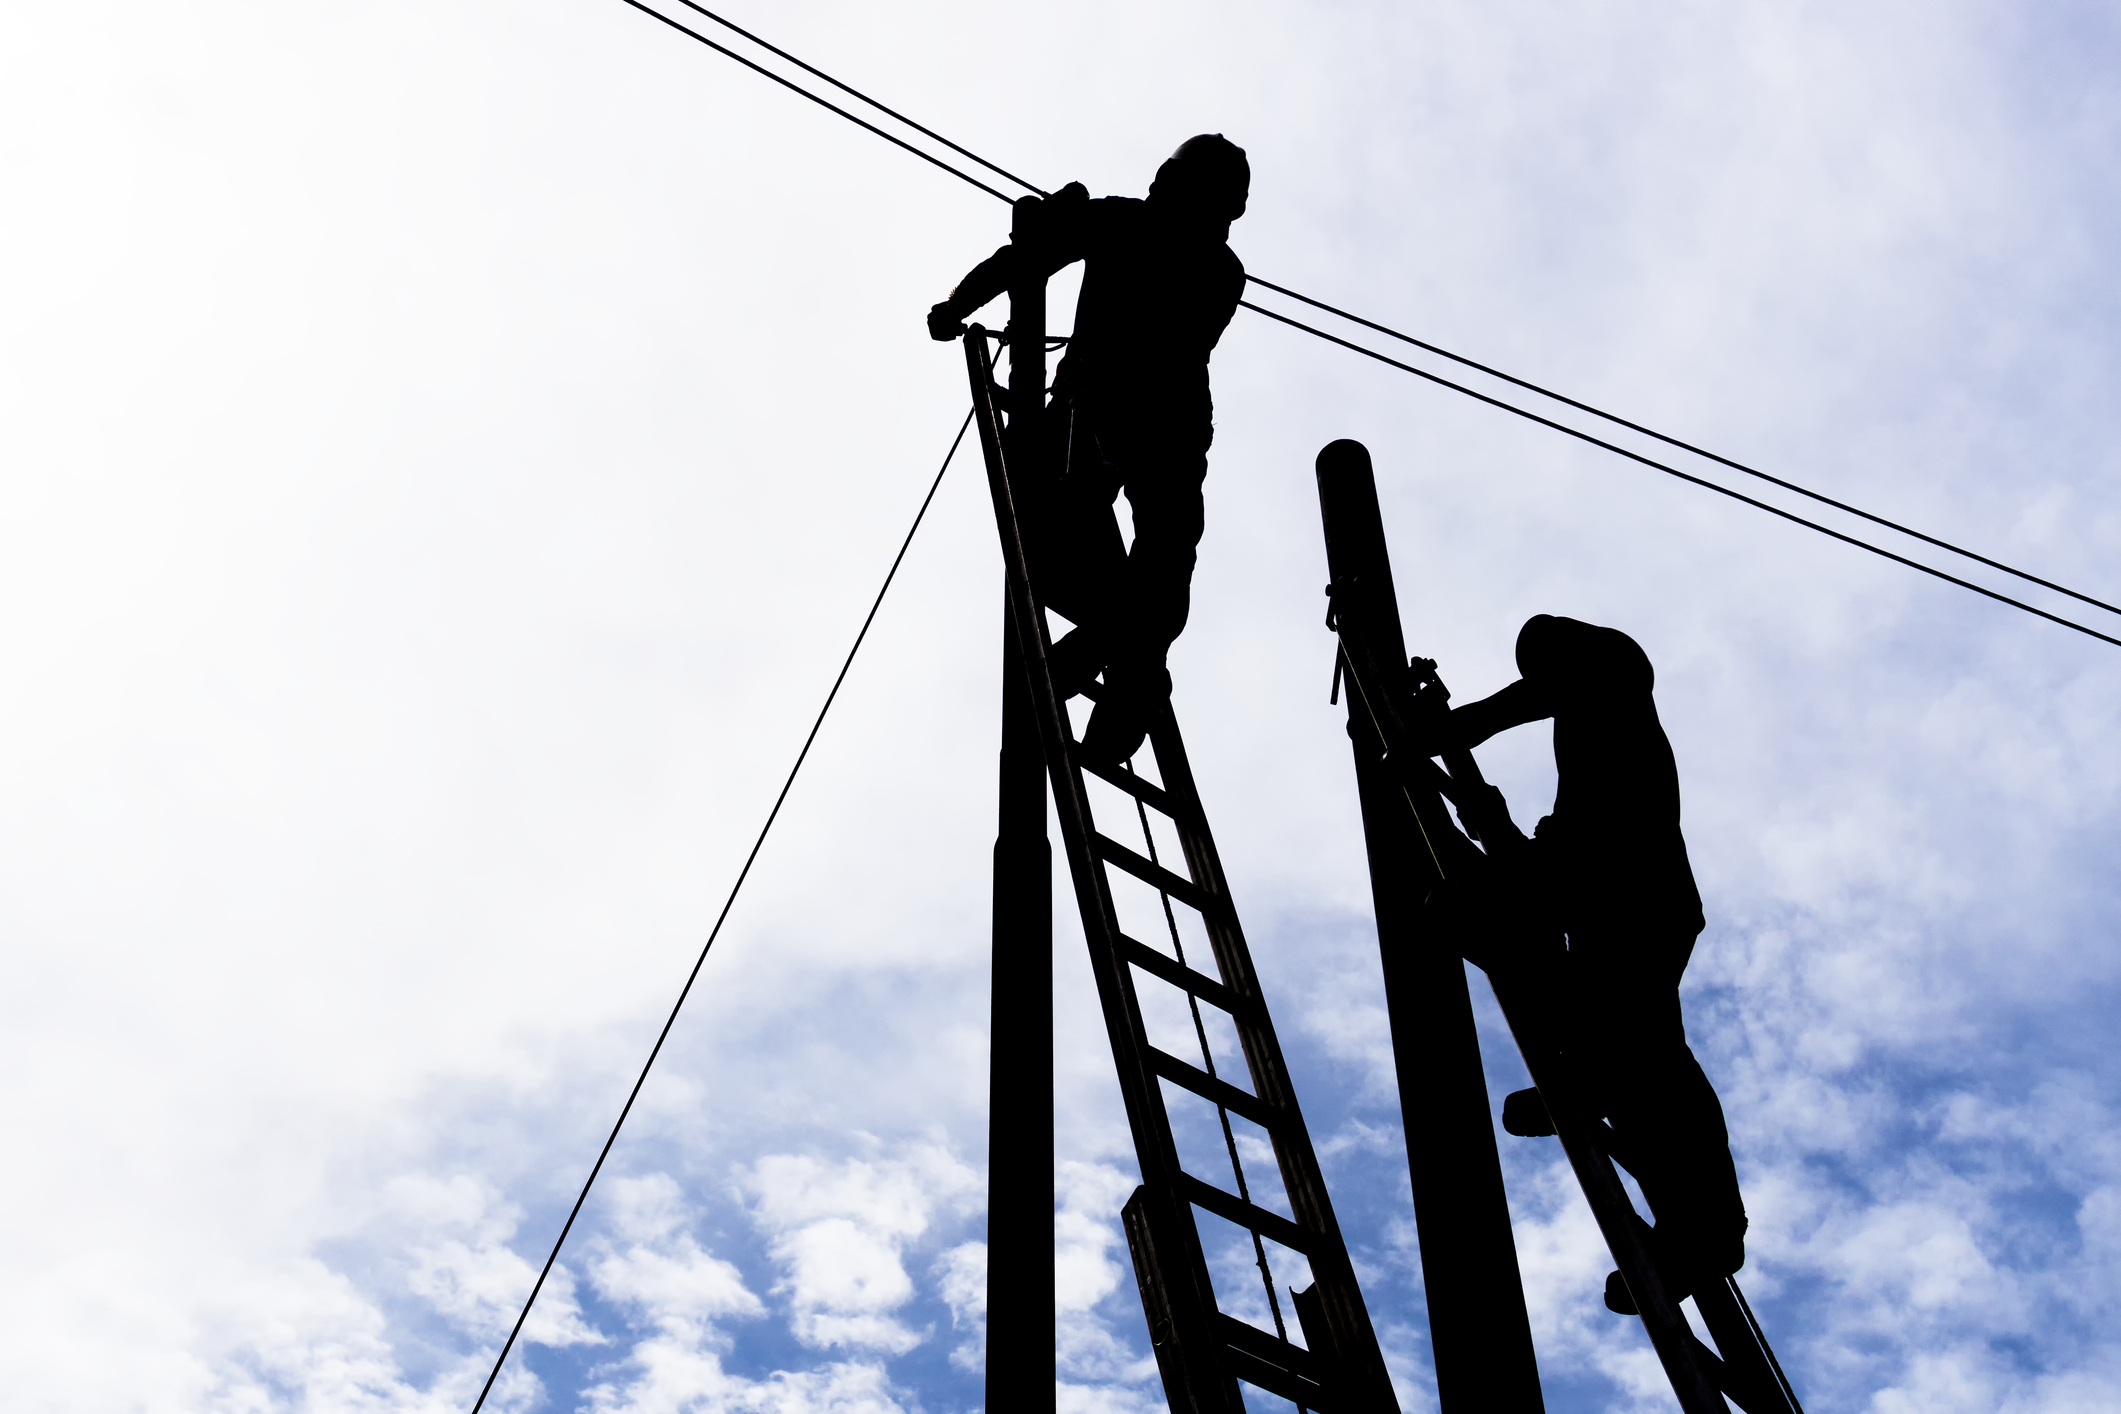 Silhouettes of Two Men Working on Electric Power Line Pole